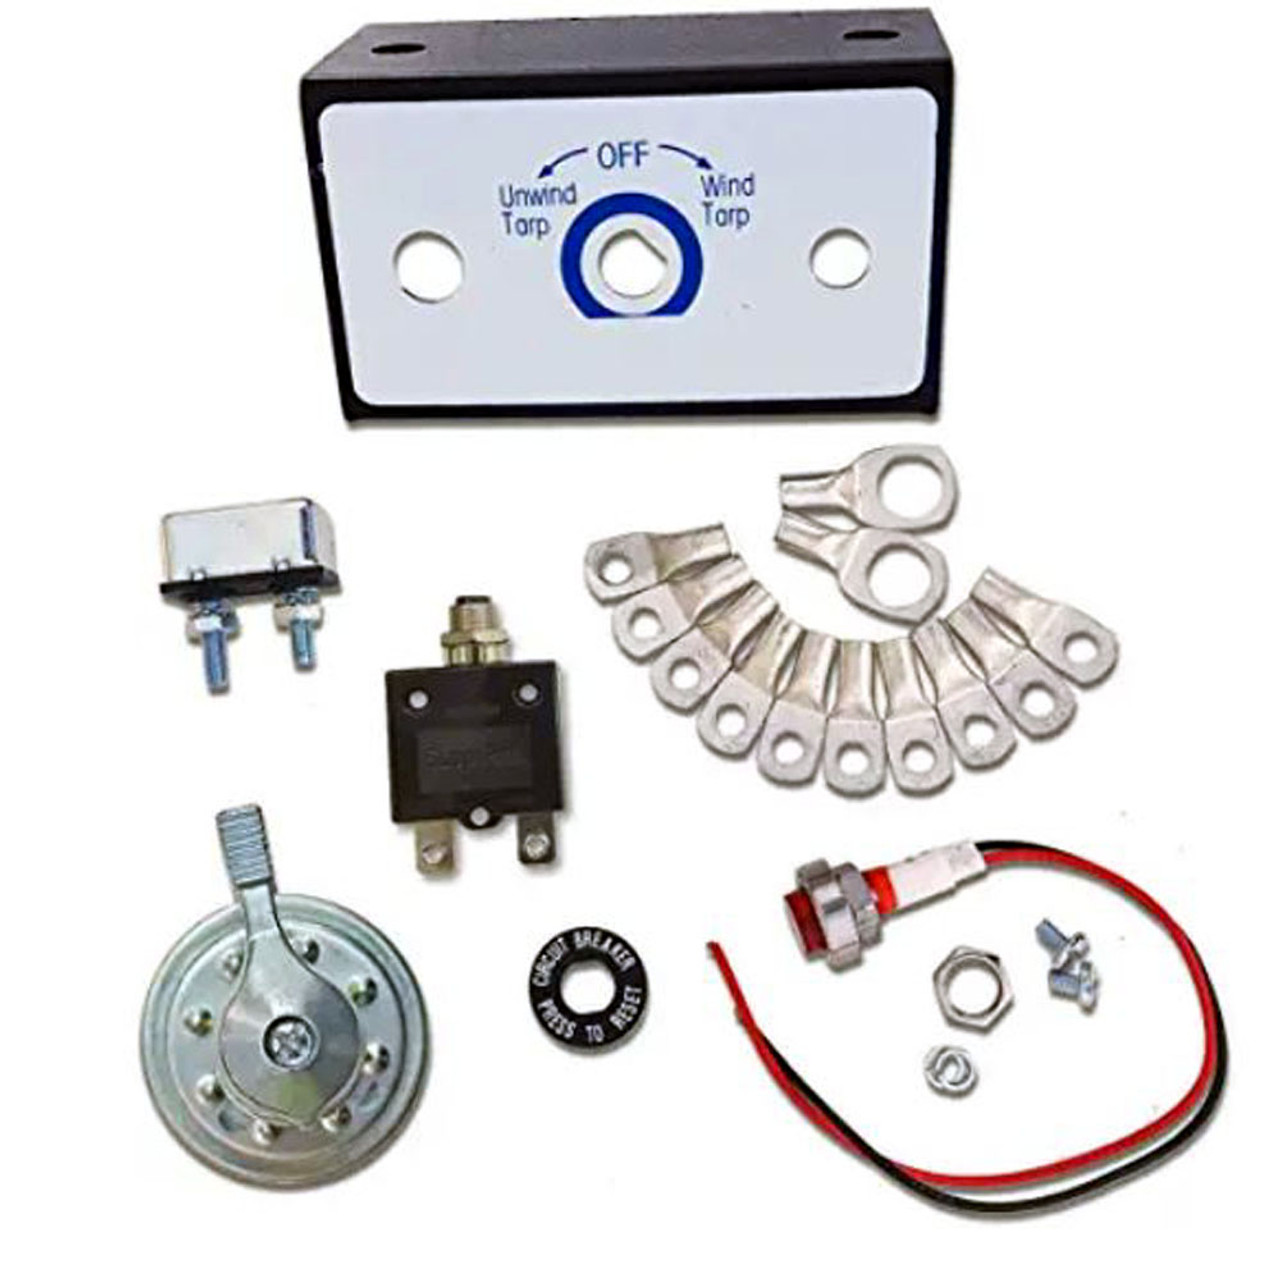 ALL TRUCK PRODUCTS TARP MOTOR ROTARY SWITCH KIT w/CIRCUIT BREAKER and INDICATOR LIGHT 12VDC 50 Amps